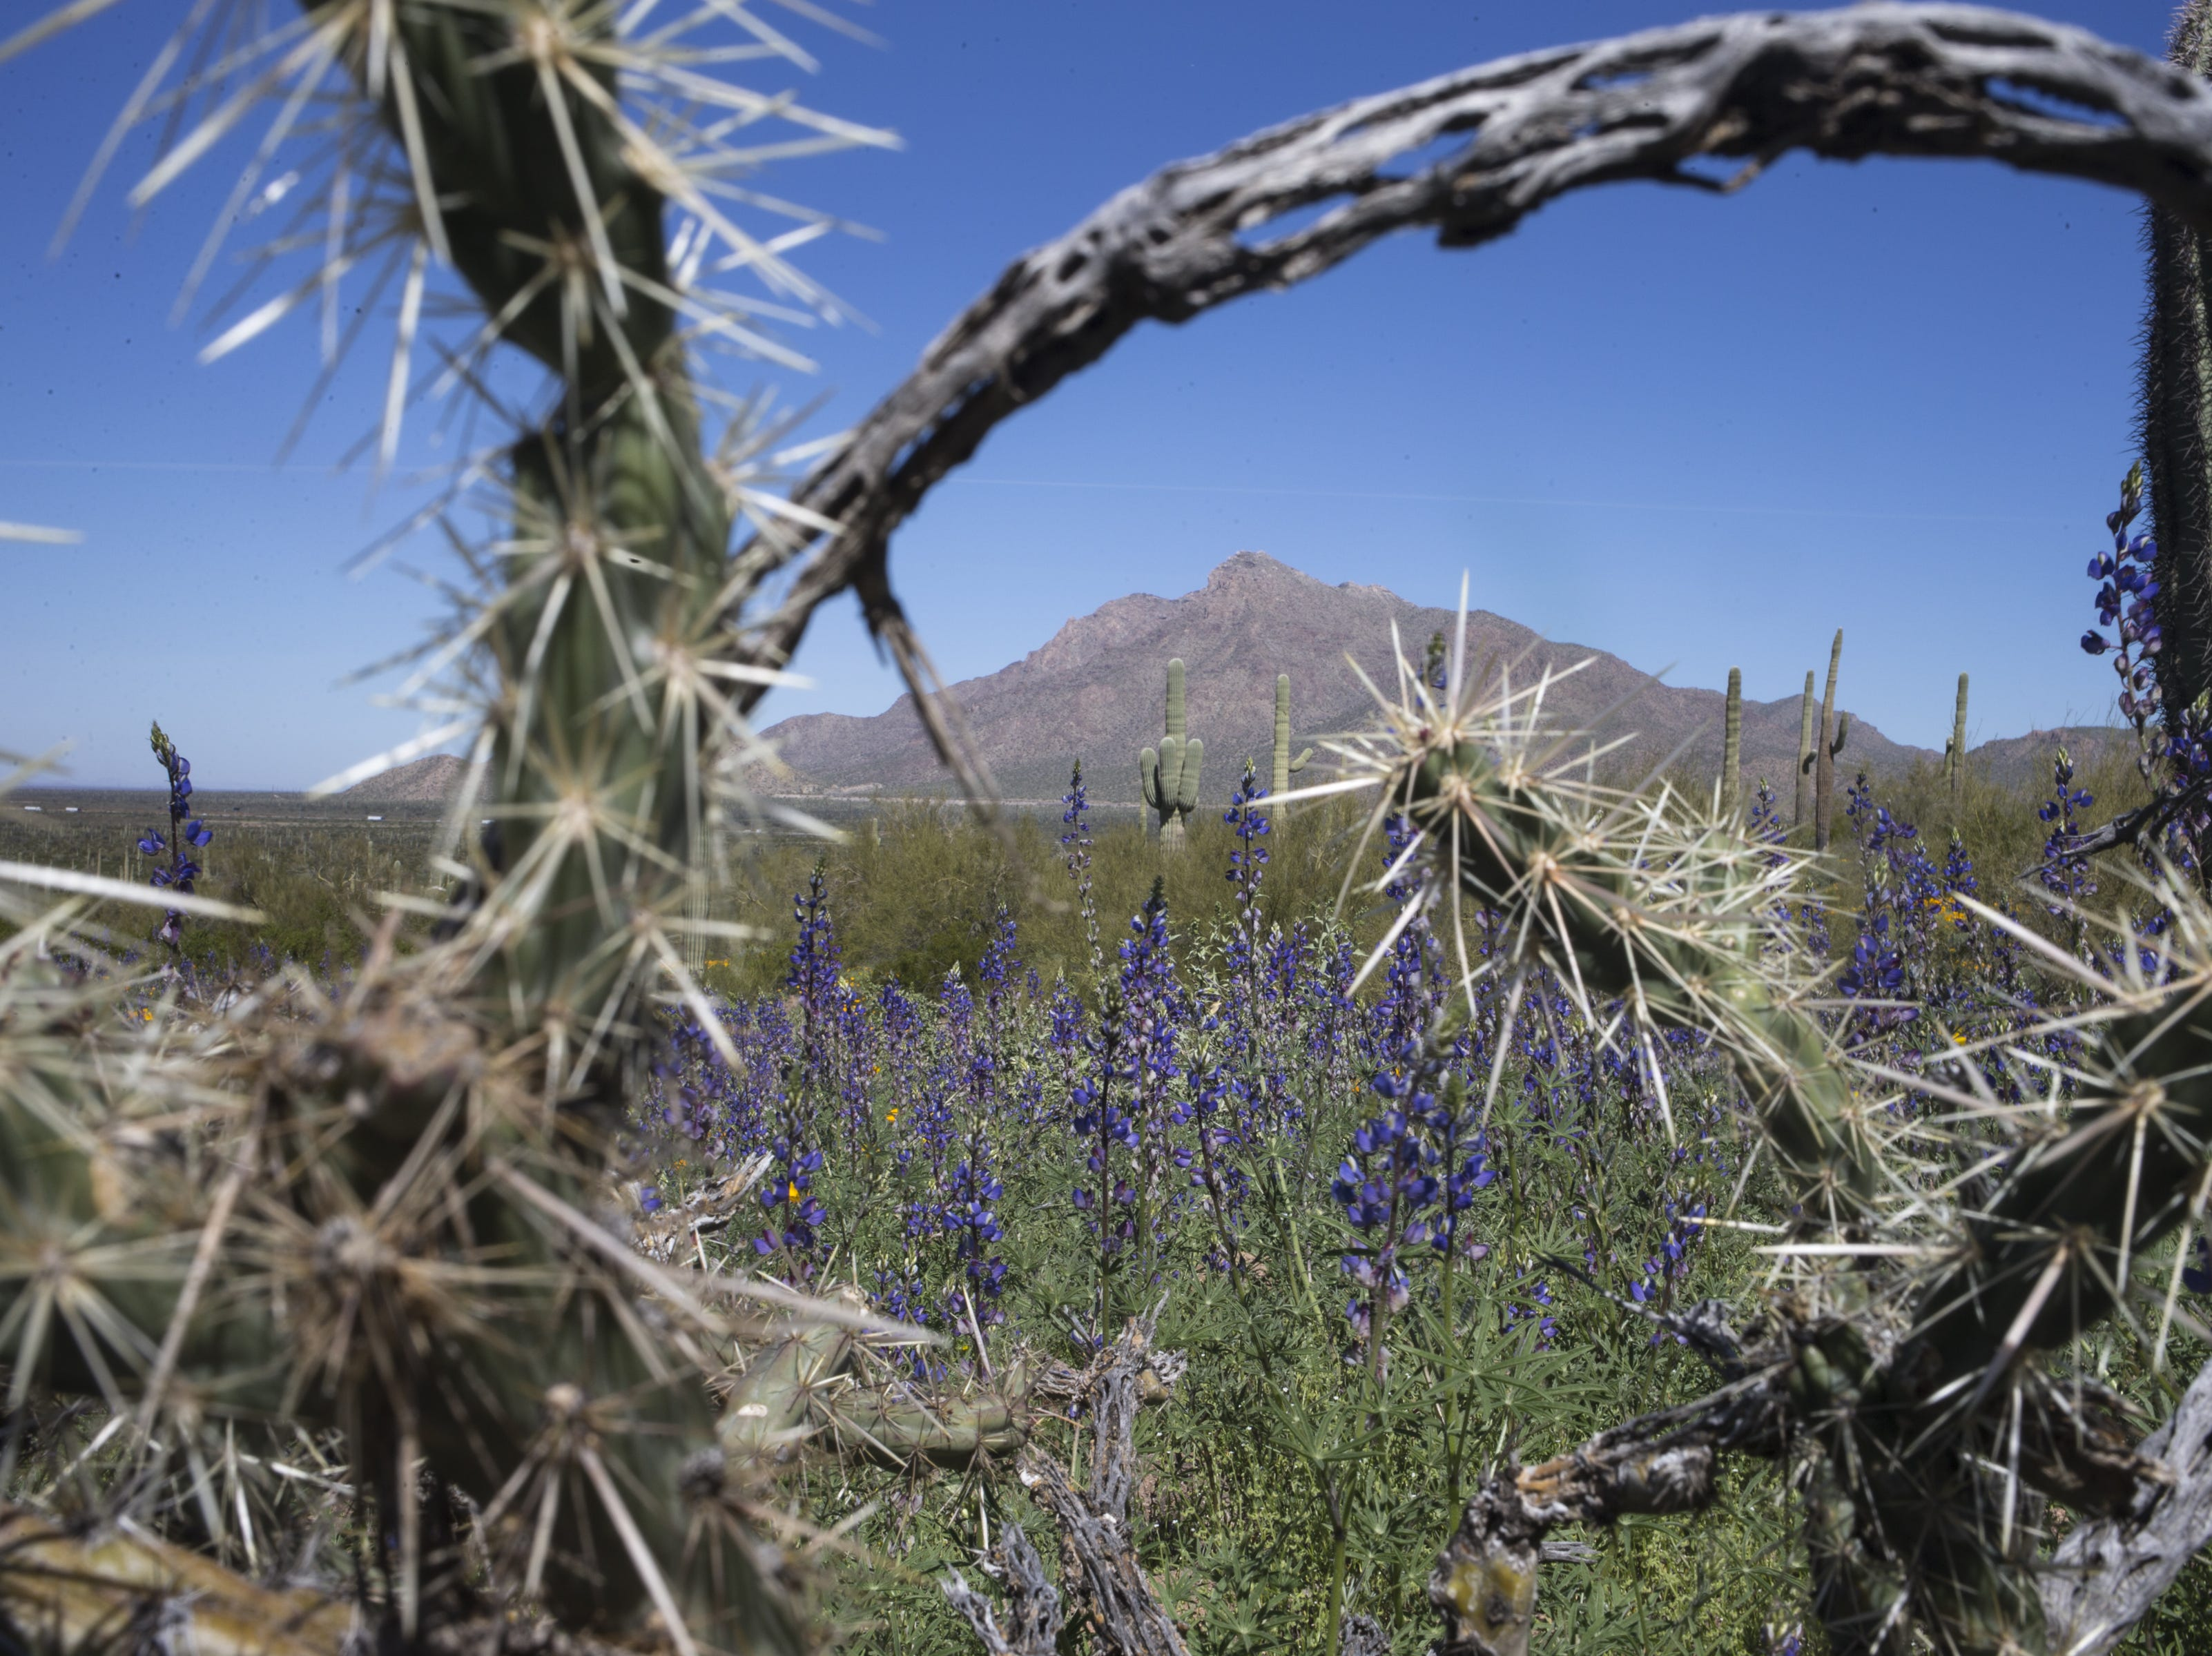 Lupine and cactus, March 5, 2019, at Picacho Peak State Park, Arizona.